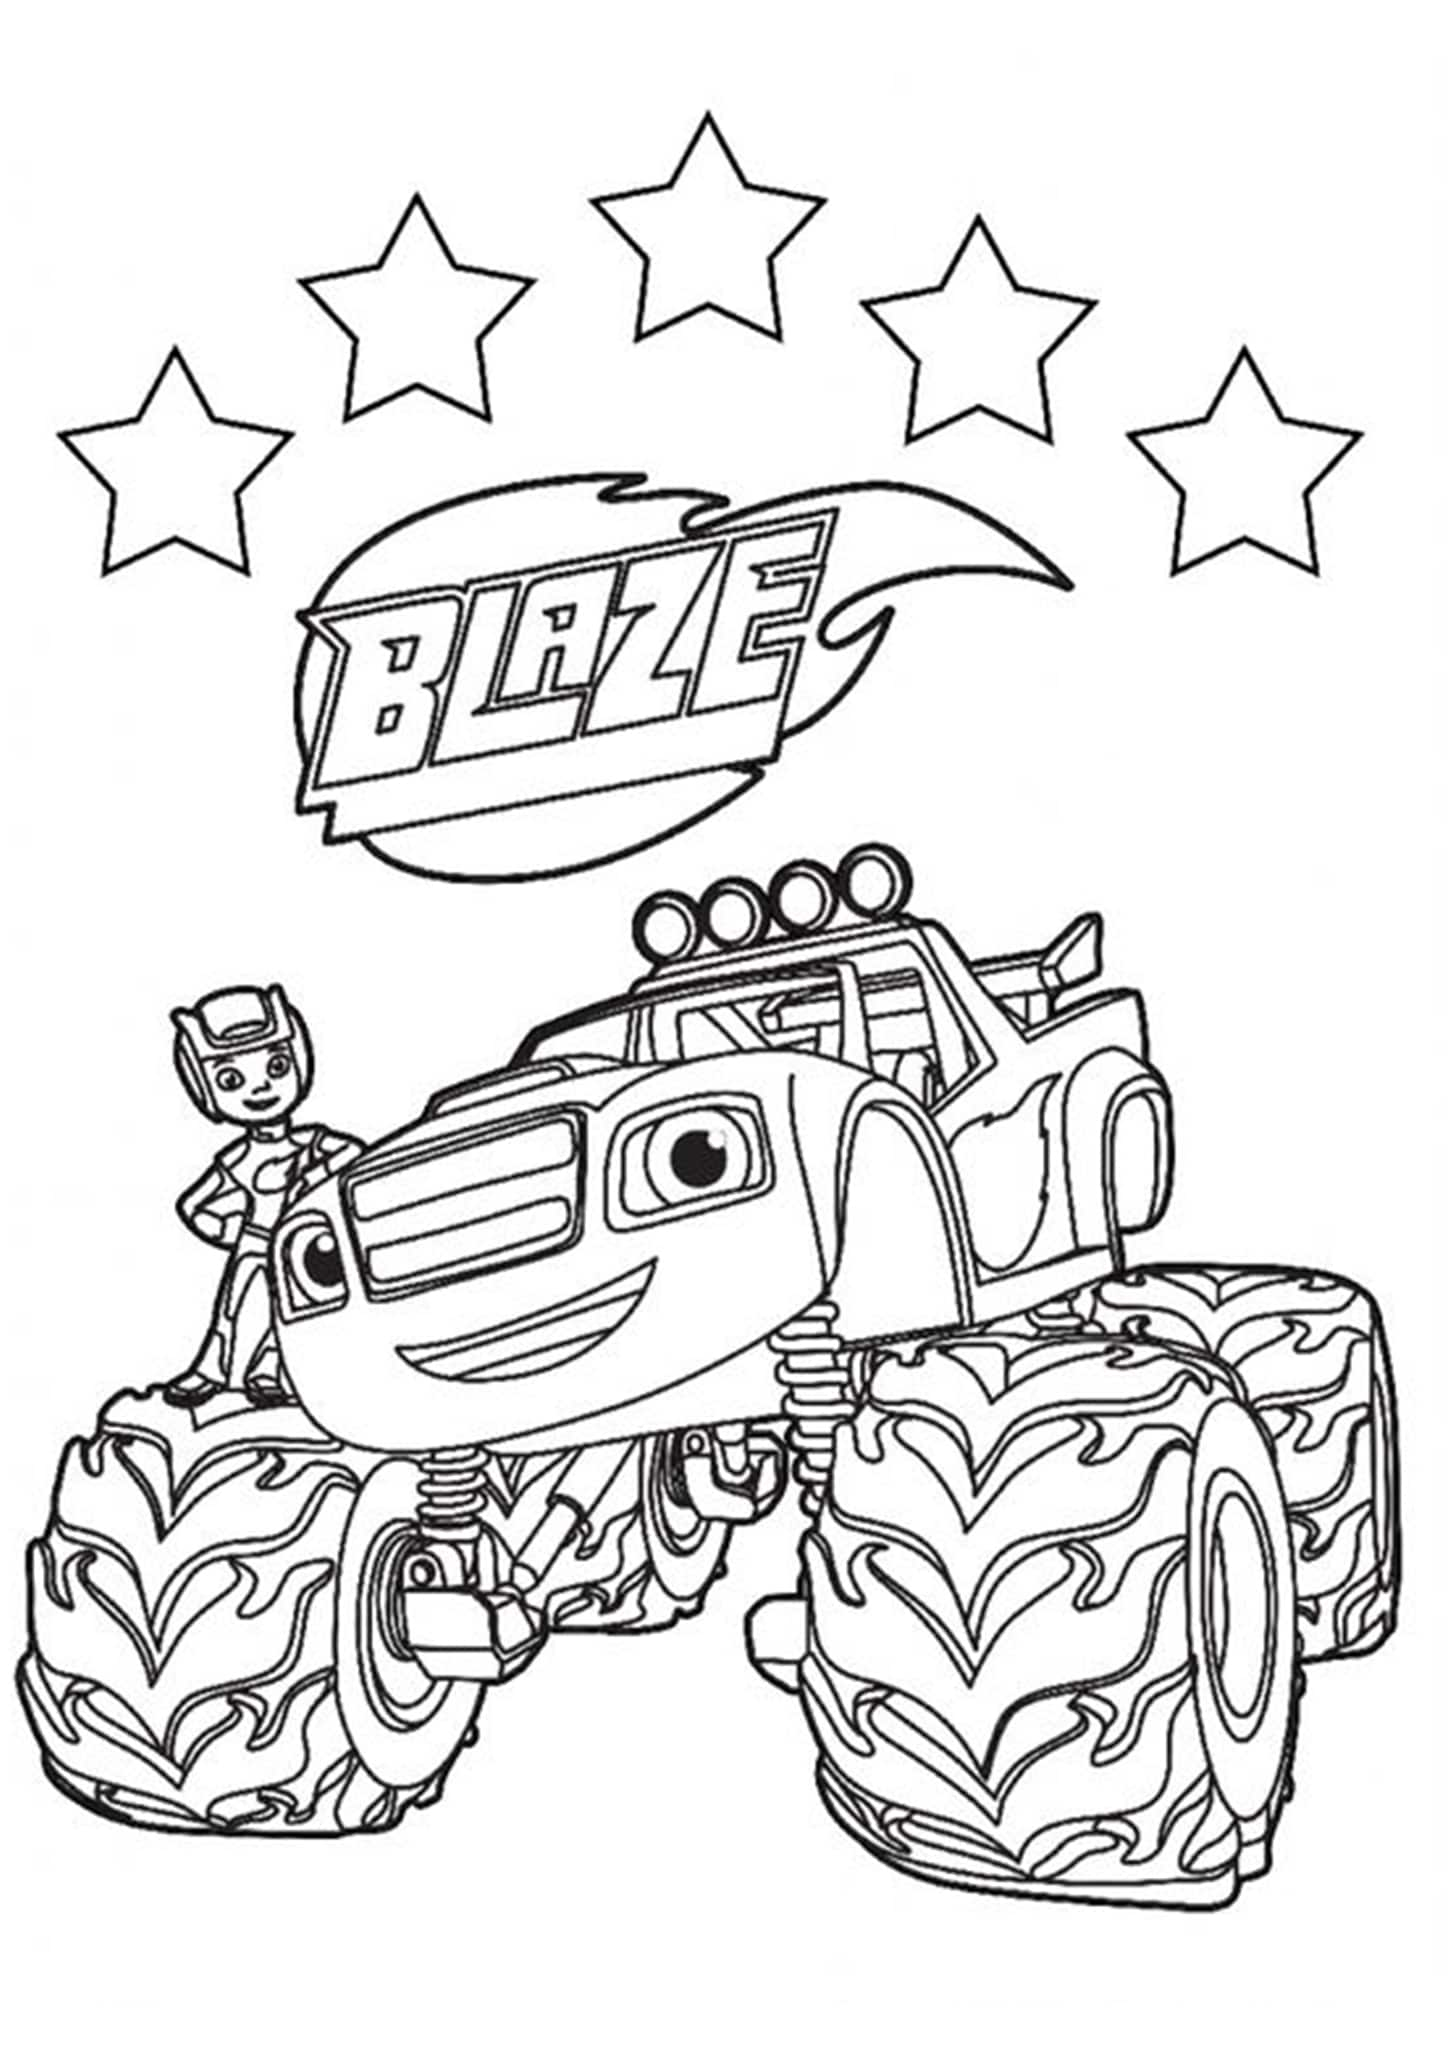 Free Printable Monster Jam Coloring Pages Monster Mutt | Monster ... | 2048x1448